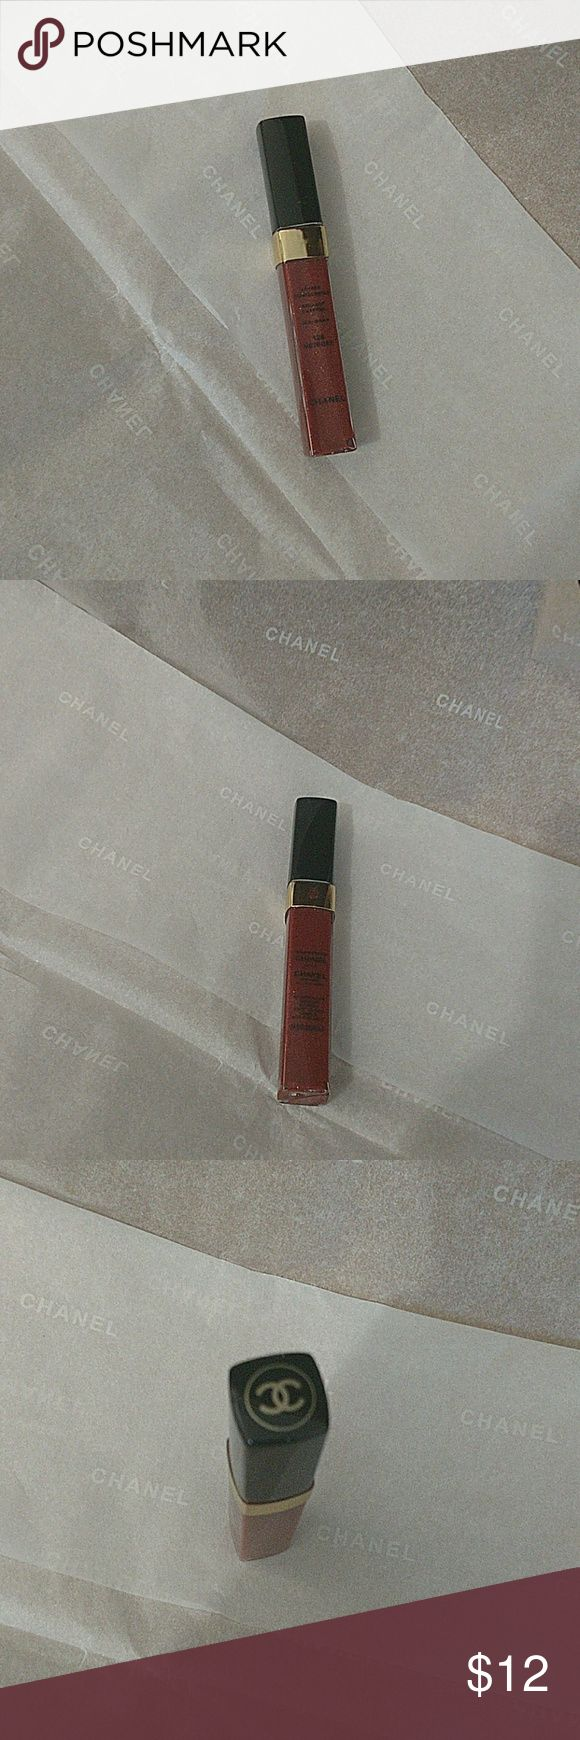 Chanel lips gloss#128: Meteore Without a box Chanel Lips gloss Paris made in France.Smaller size. CHANEL Makeup Lip Balm & Gloss